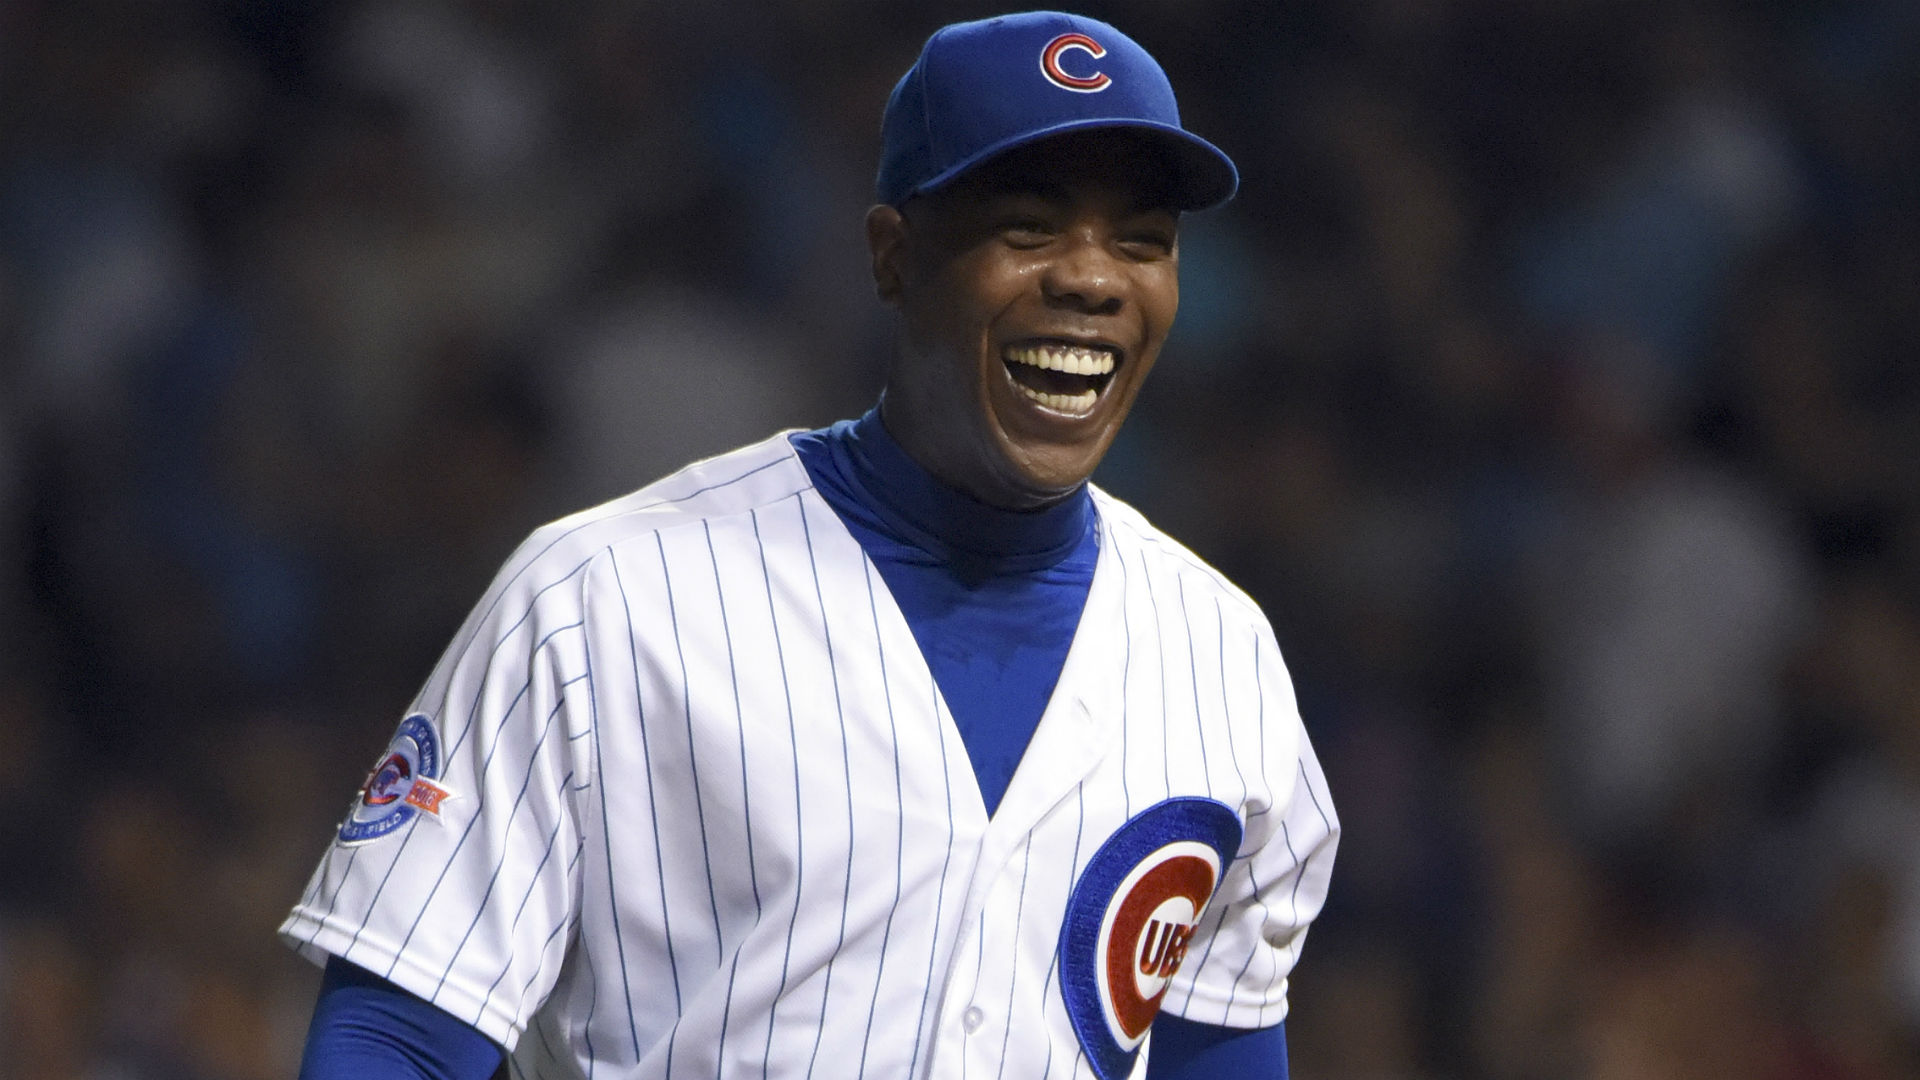 Cubs fire DJ who played song with references to violence